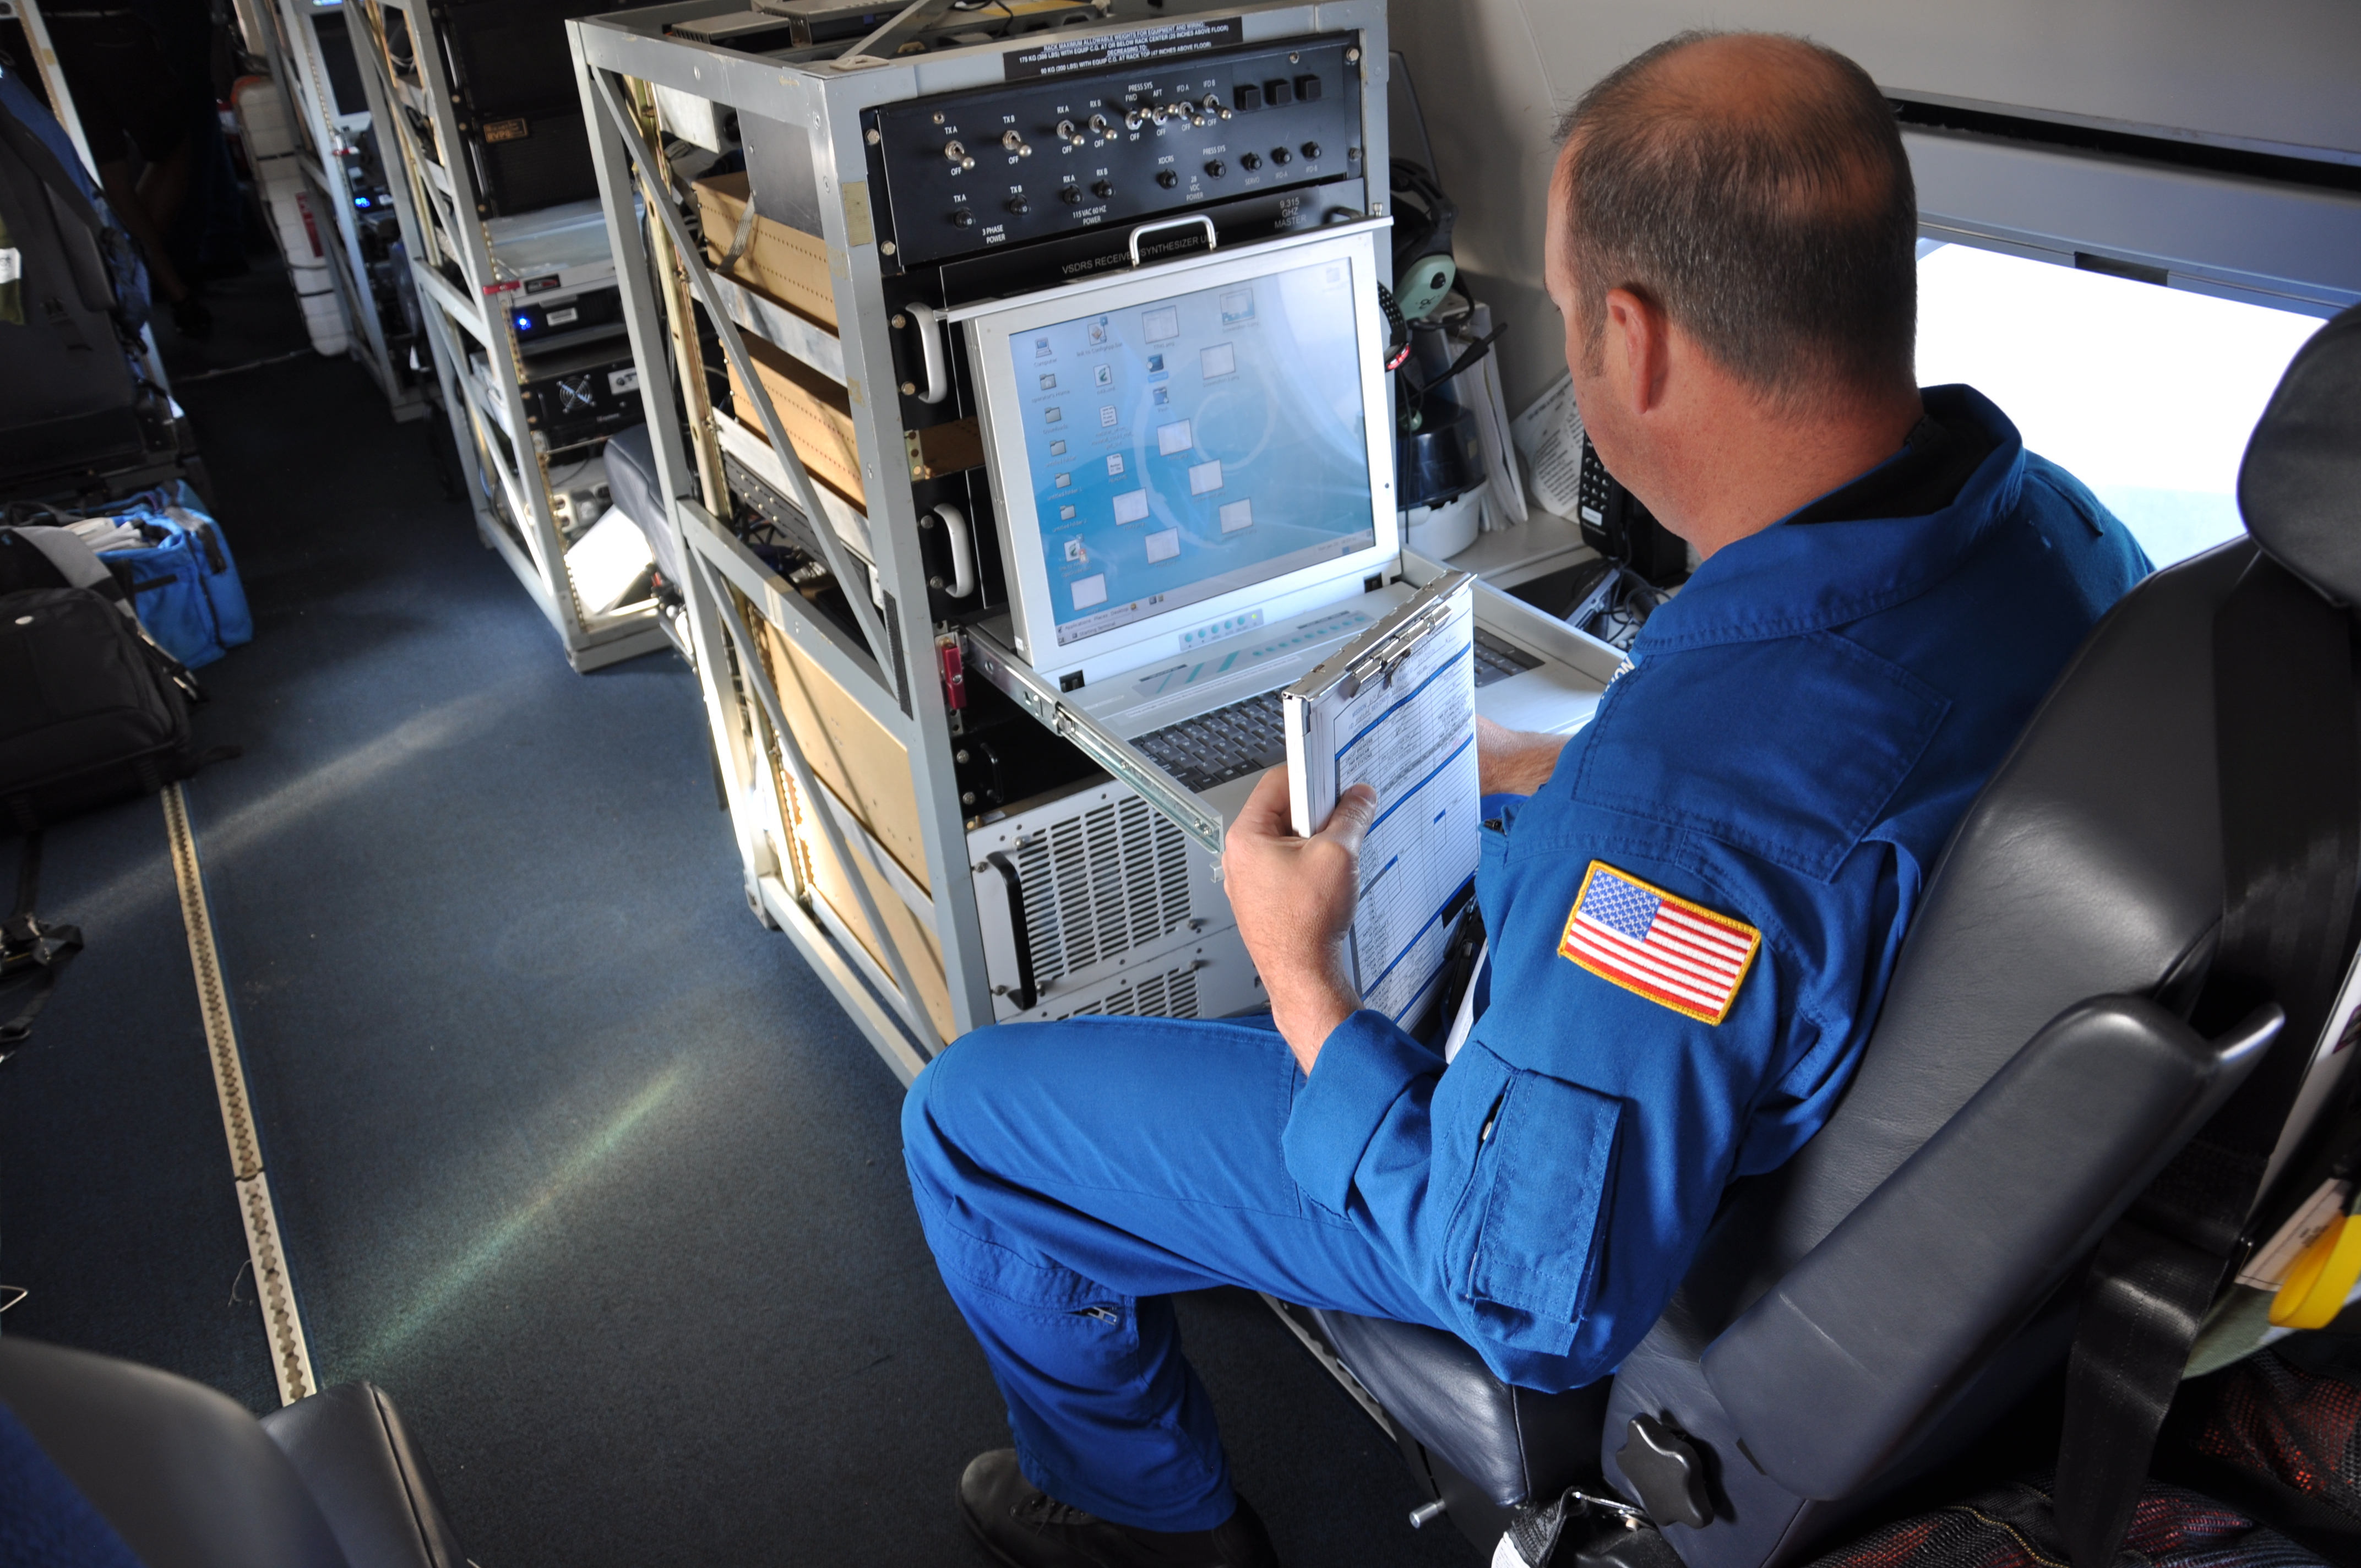 NOAA Aircraft Lead Electronics Technician sits in front of laptop.